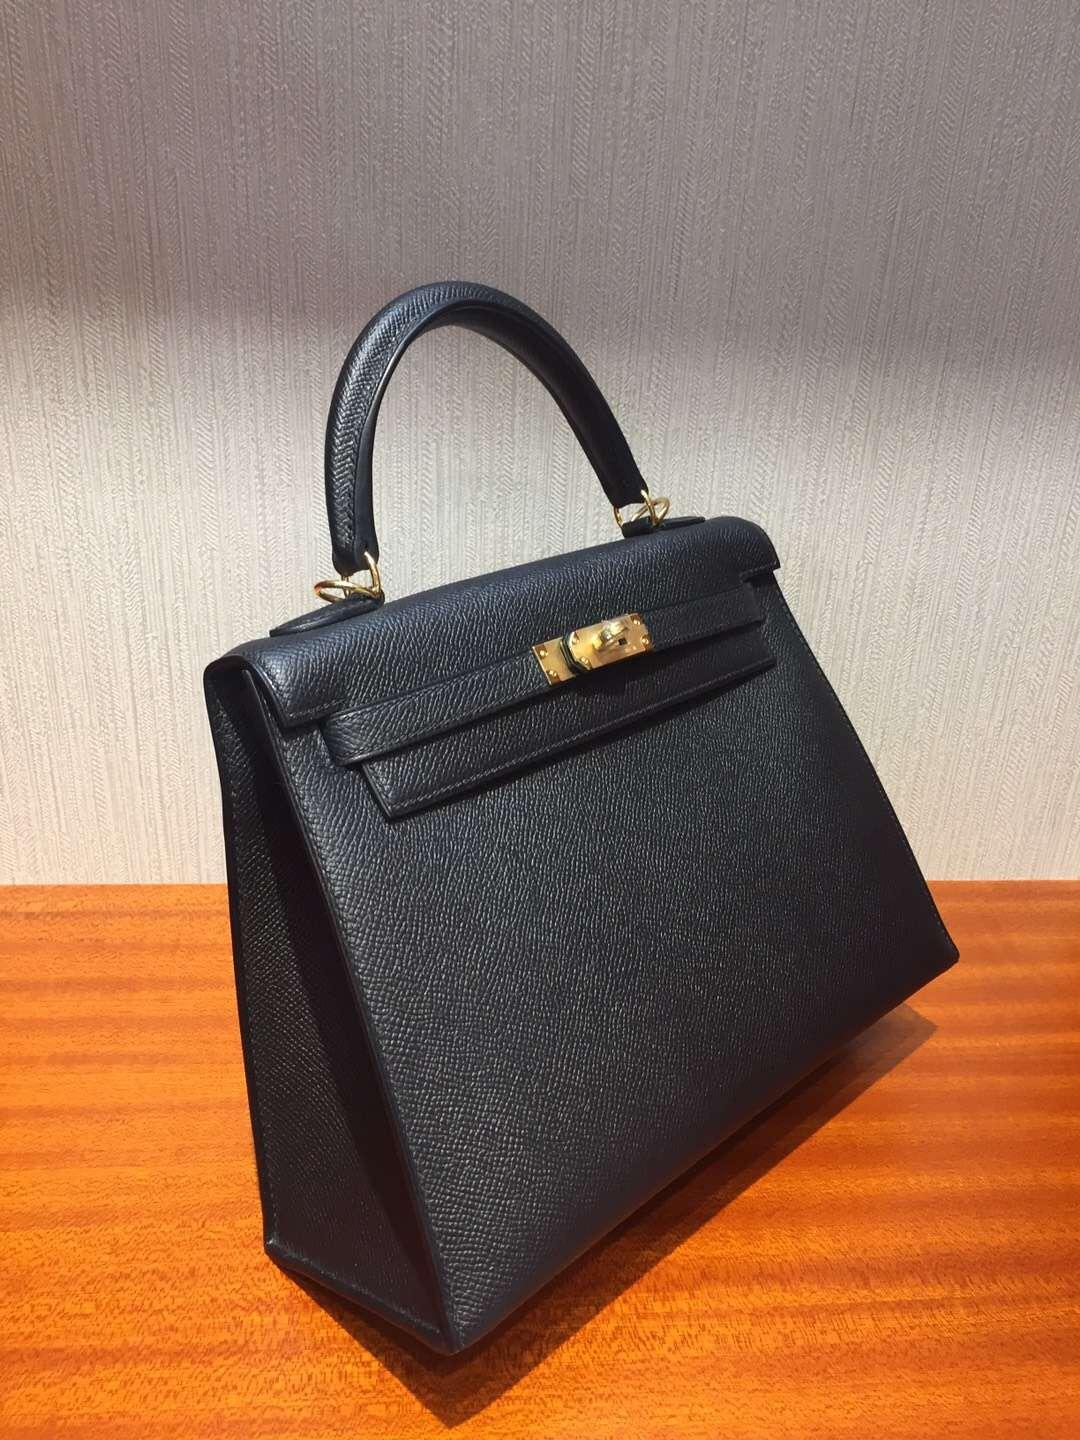 Australia Hermes Kelly bag 25cm CK89黑色 Epsom掌紋牛皮 金扣